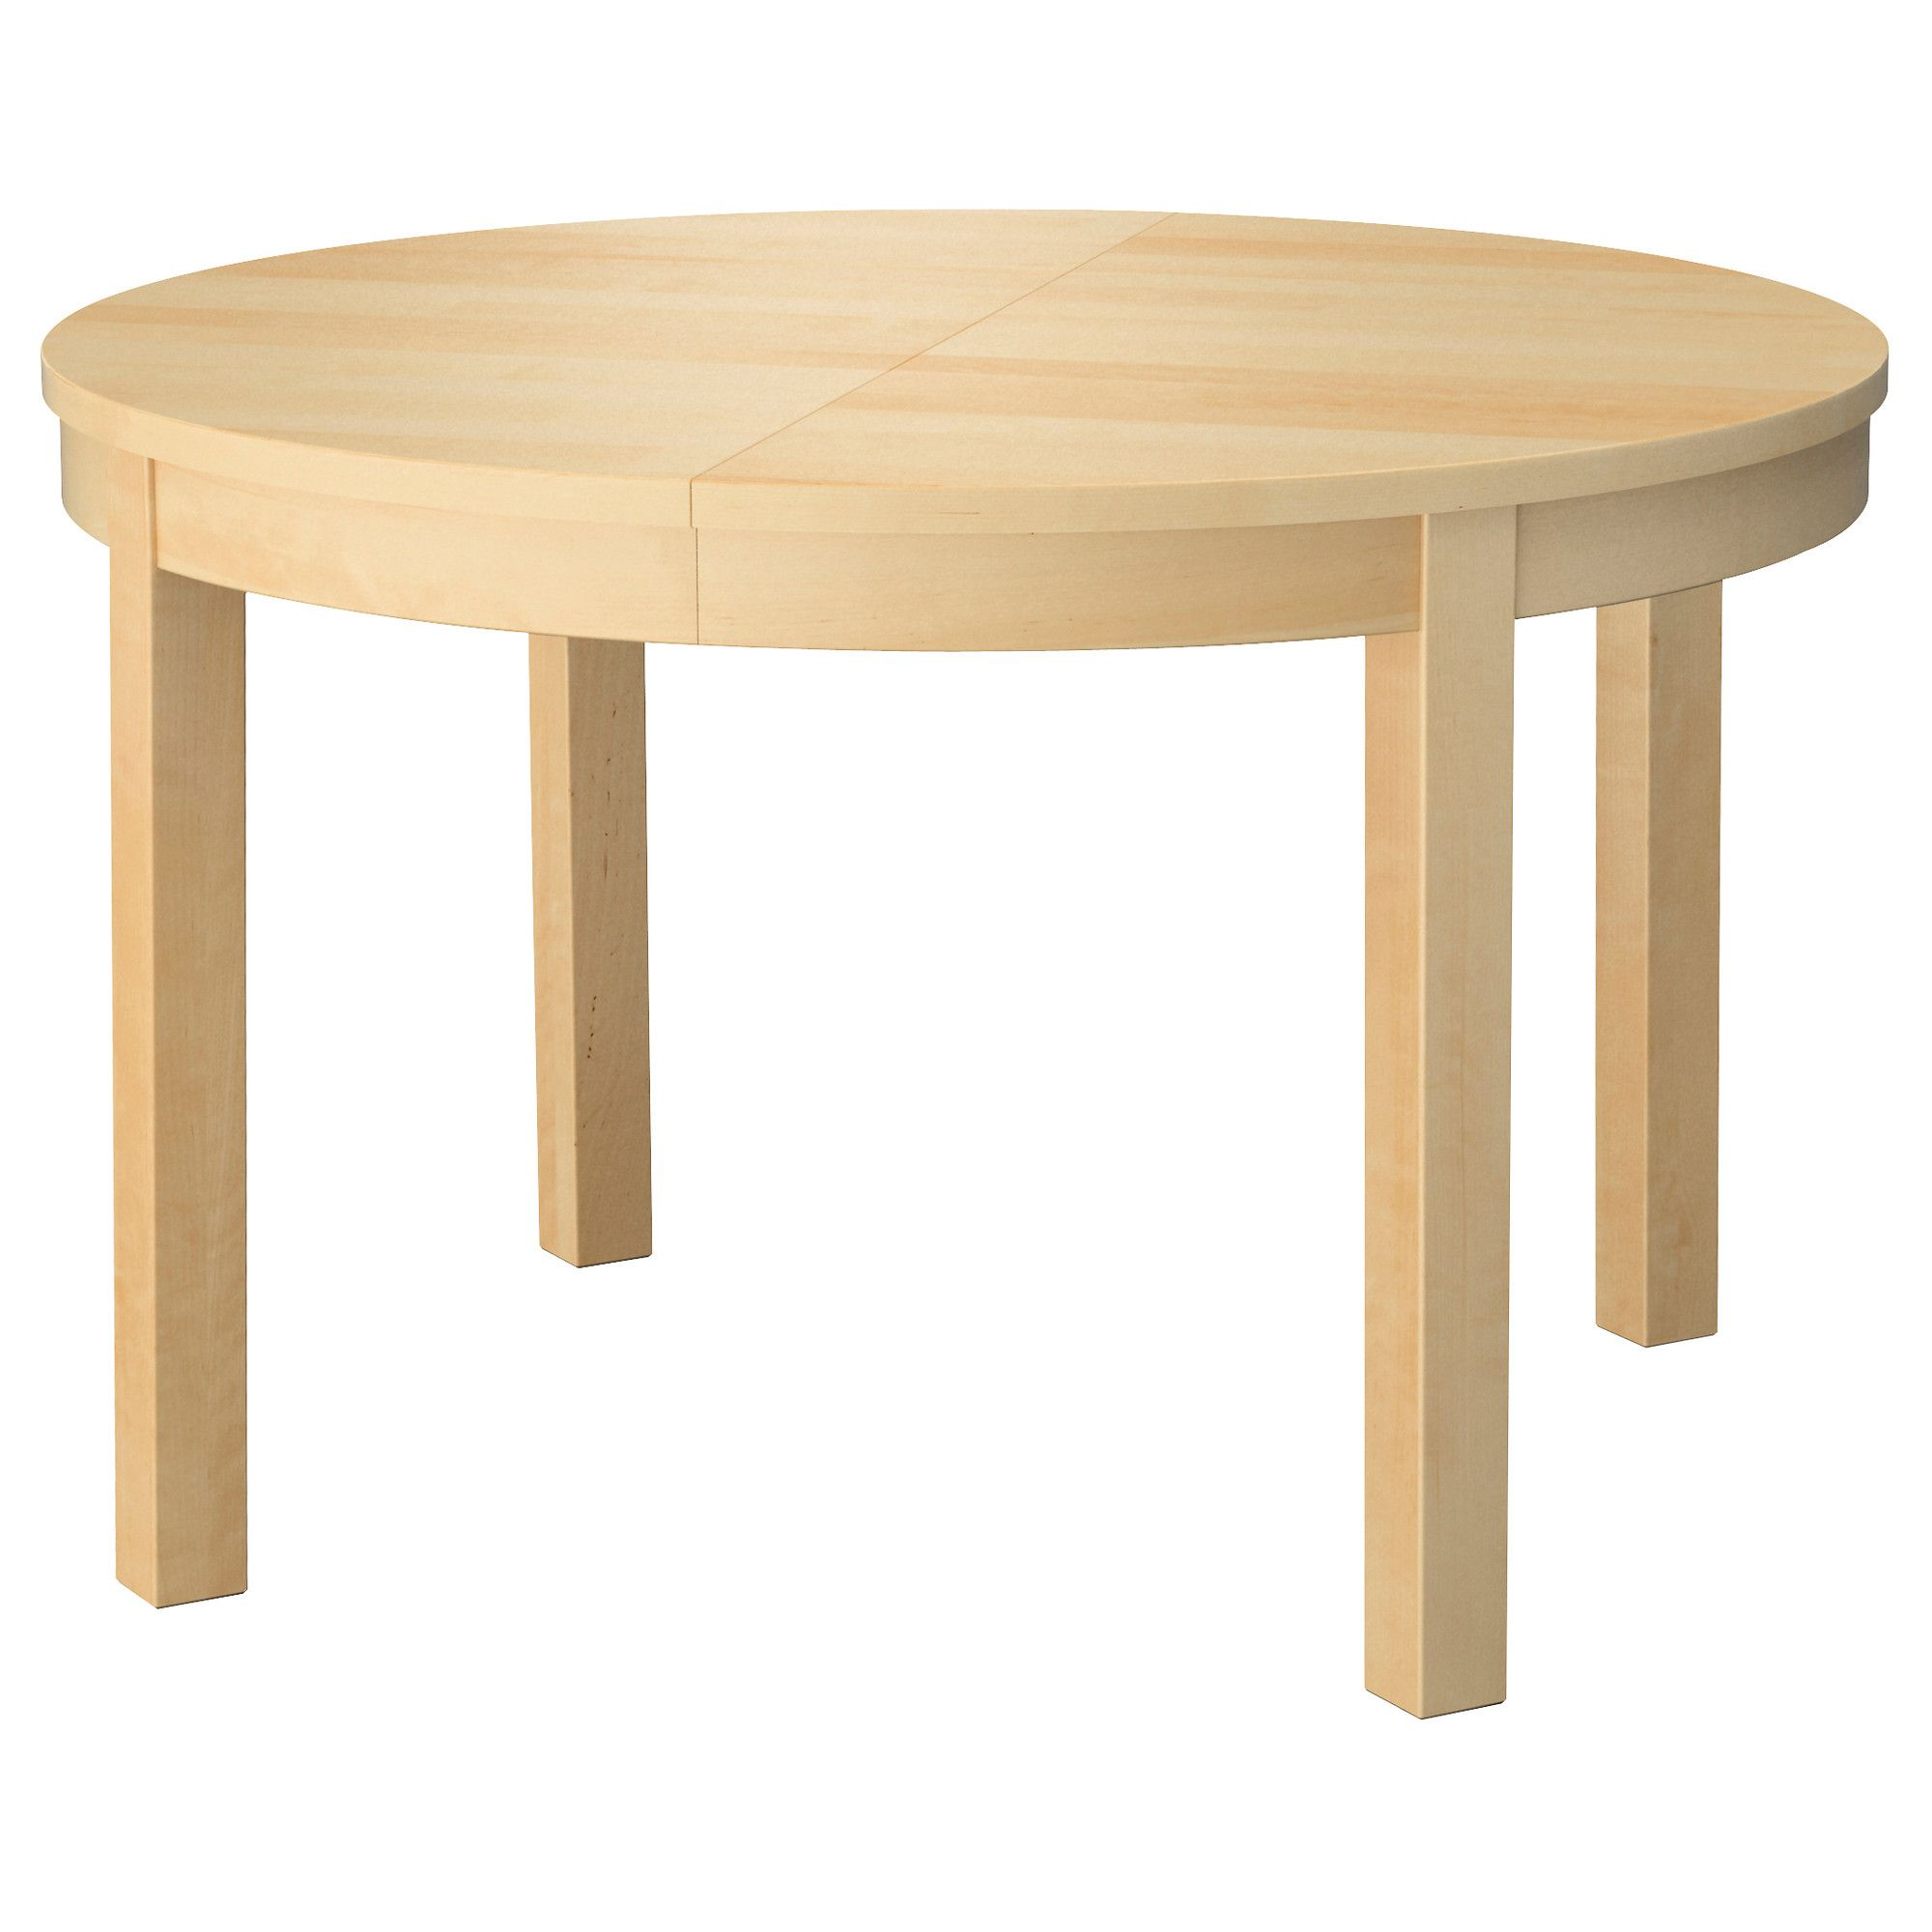 Ikea Us Furniture And Home Furnishings Extendable Dining Table